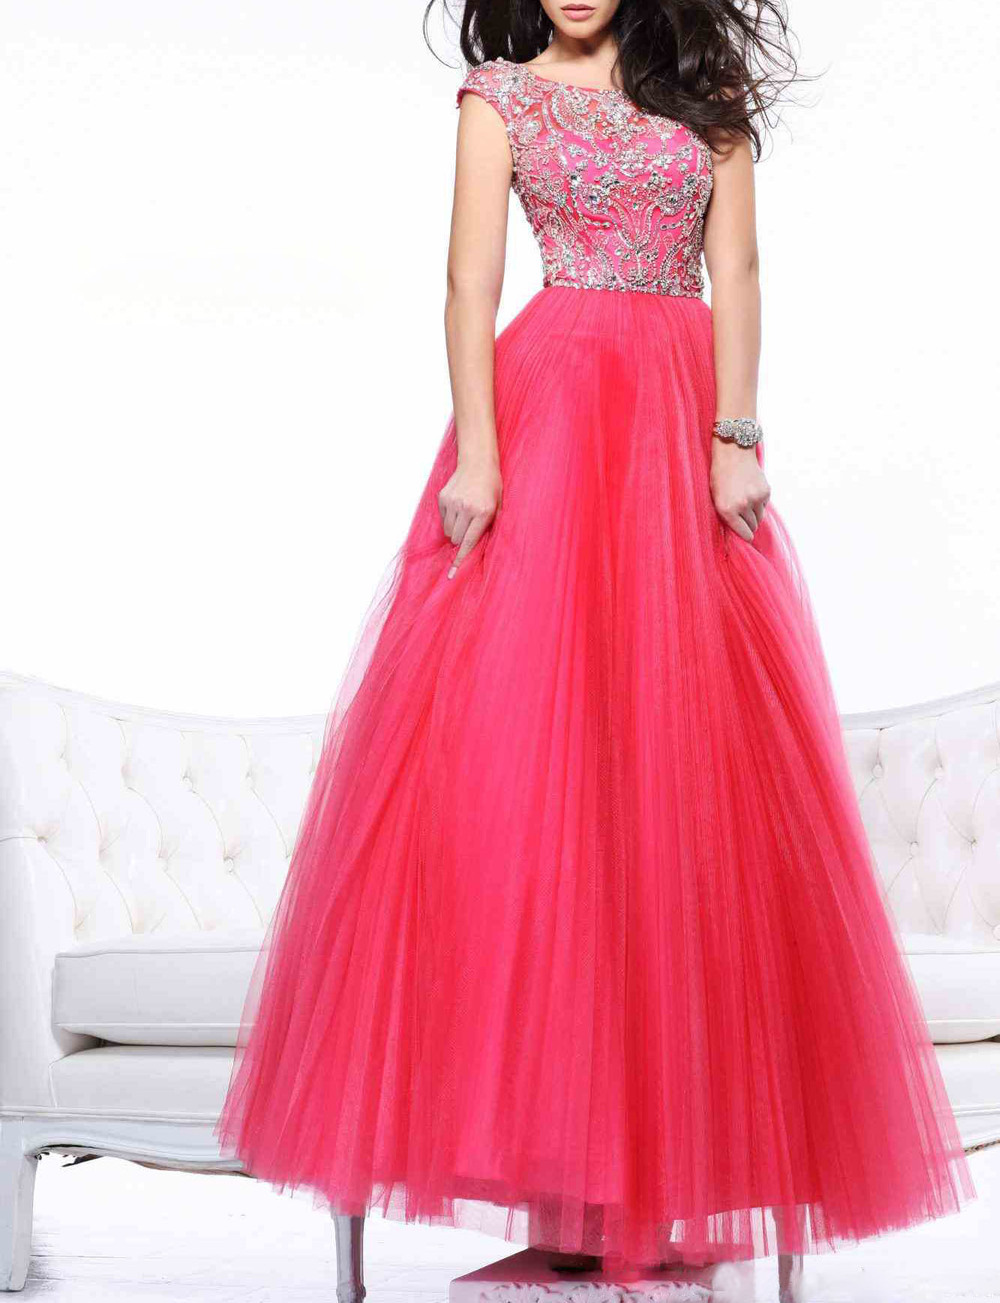 Long Prom Dresses 2015 Crystal V Backless Boa-Neck Plus Size Prom Dress Custom Made Long Evening Dress Vestido De Festa T010